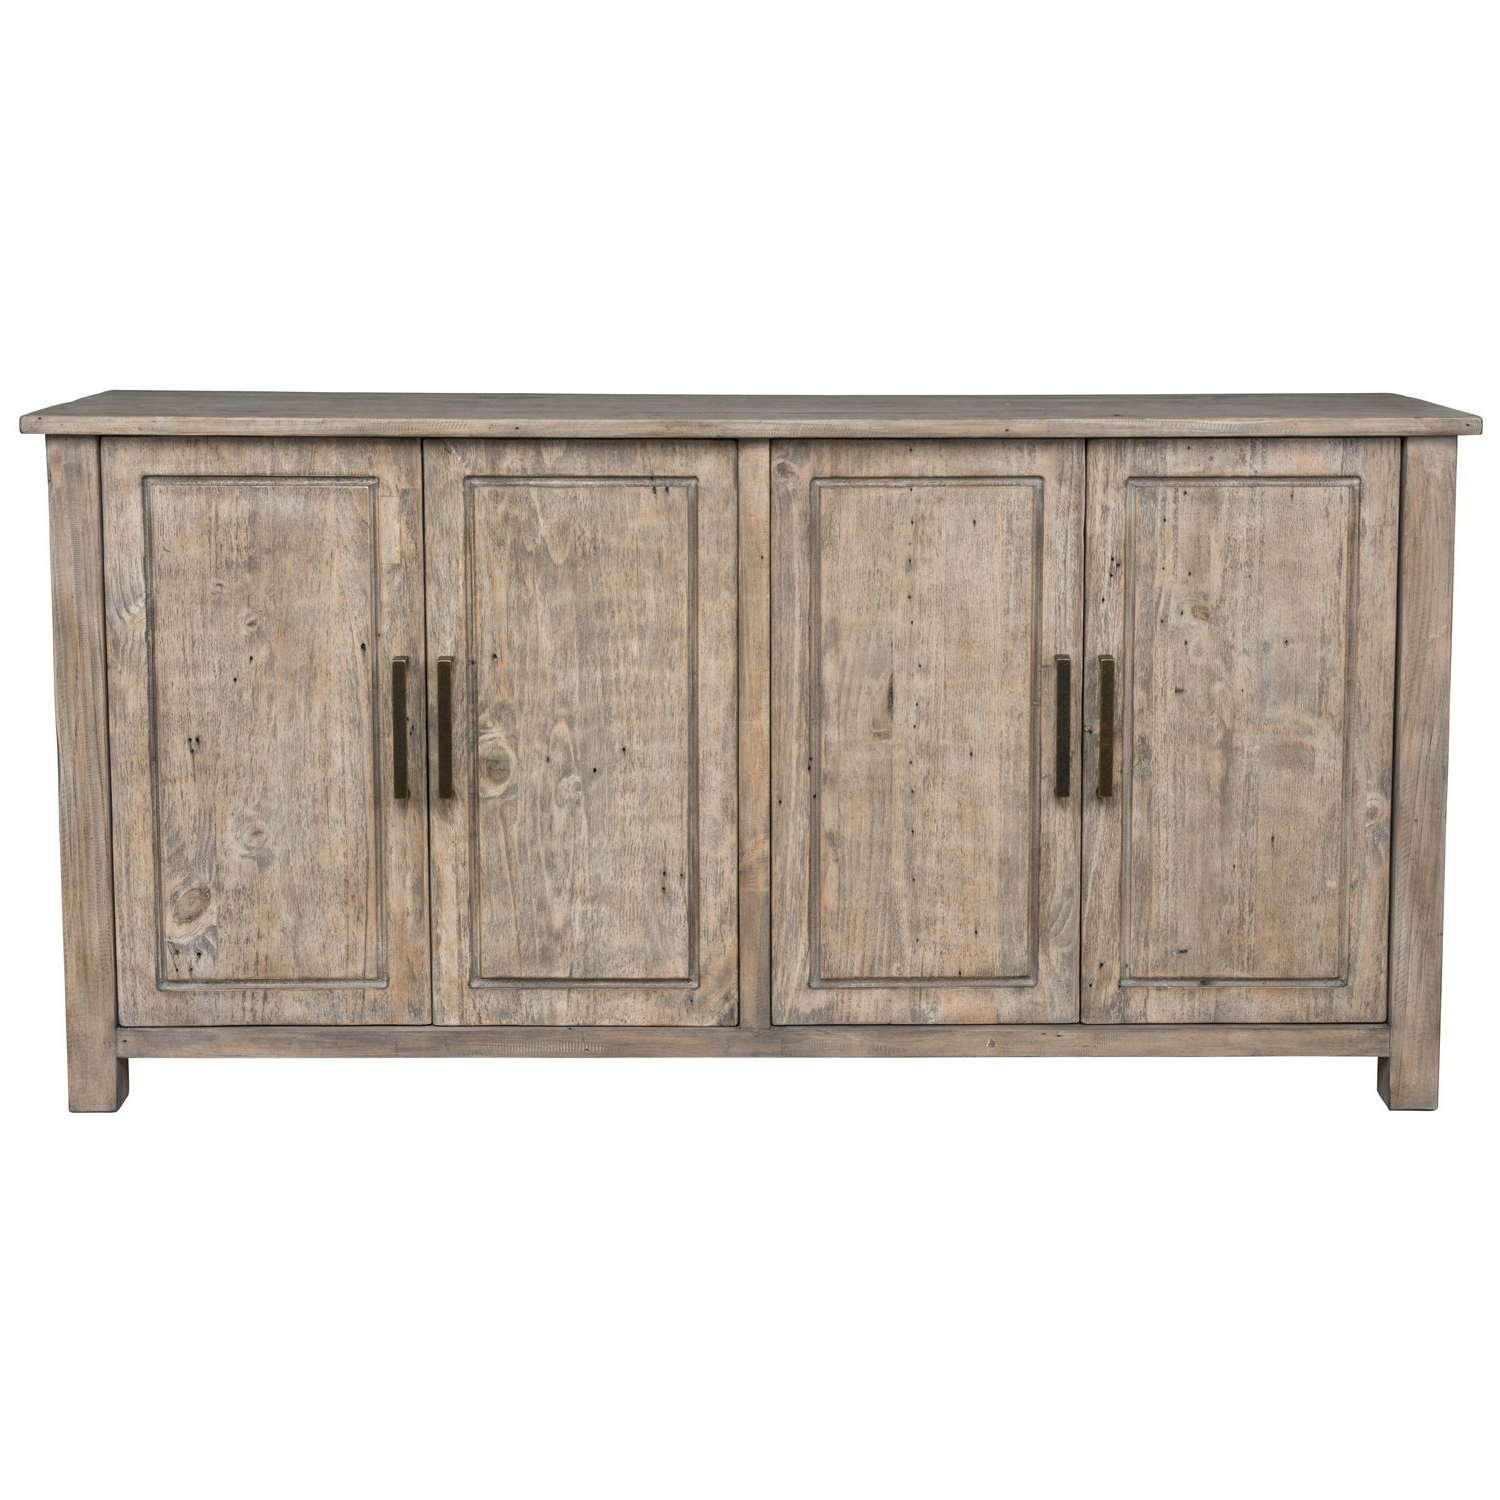 Current Shop Aires Reclaimed Wood 72 Inch Sideboardkosas Home – Free Inside Diamond Circle Sideboards (View 3 of 20)